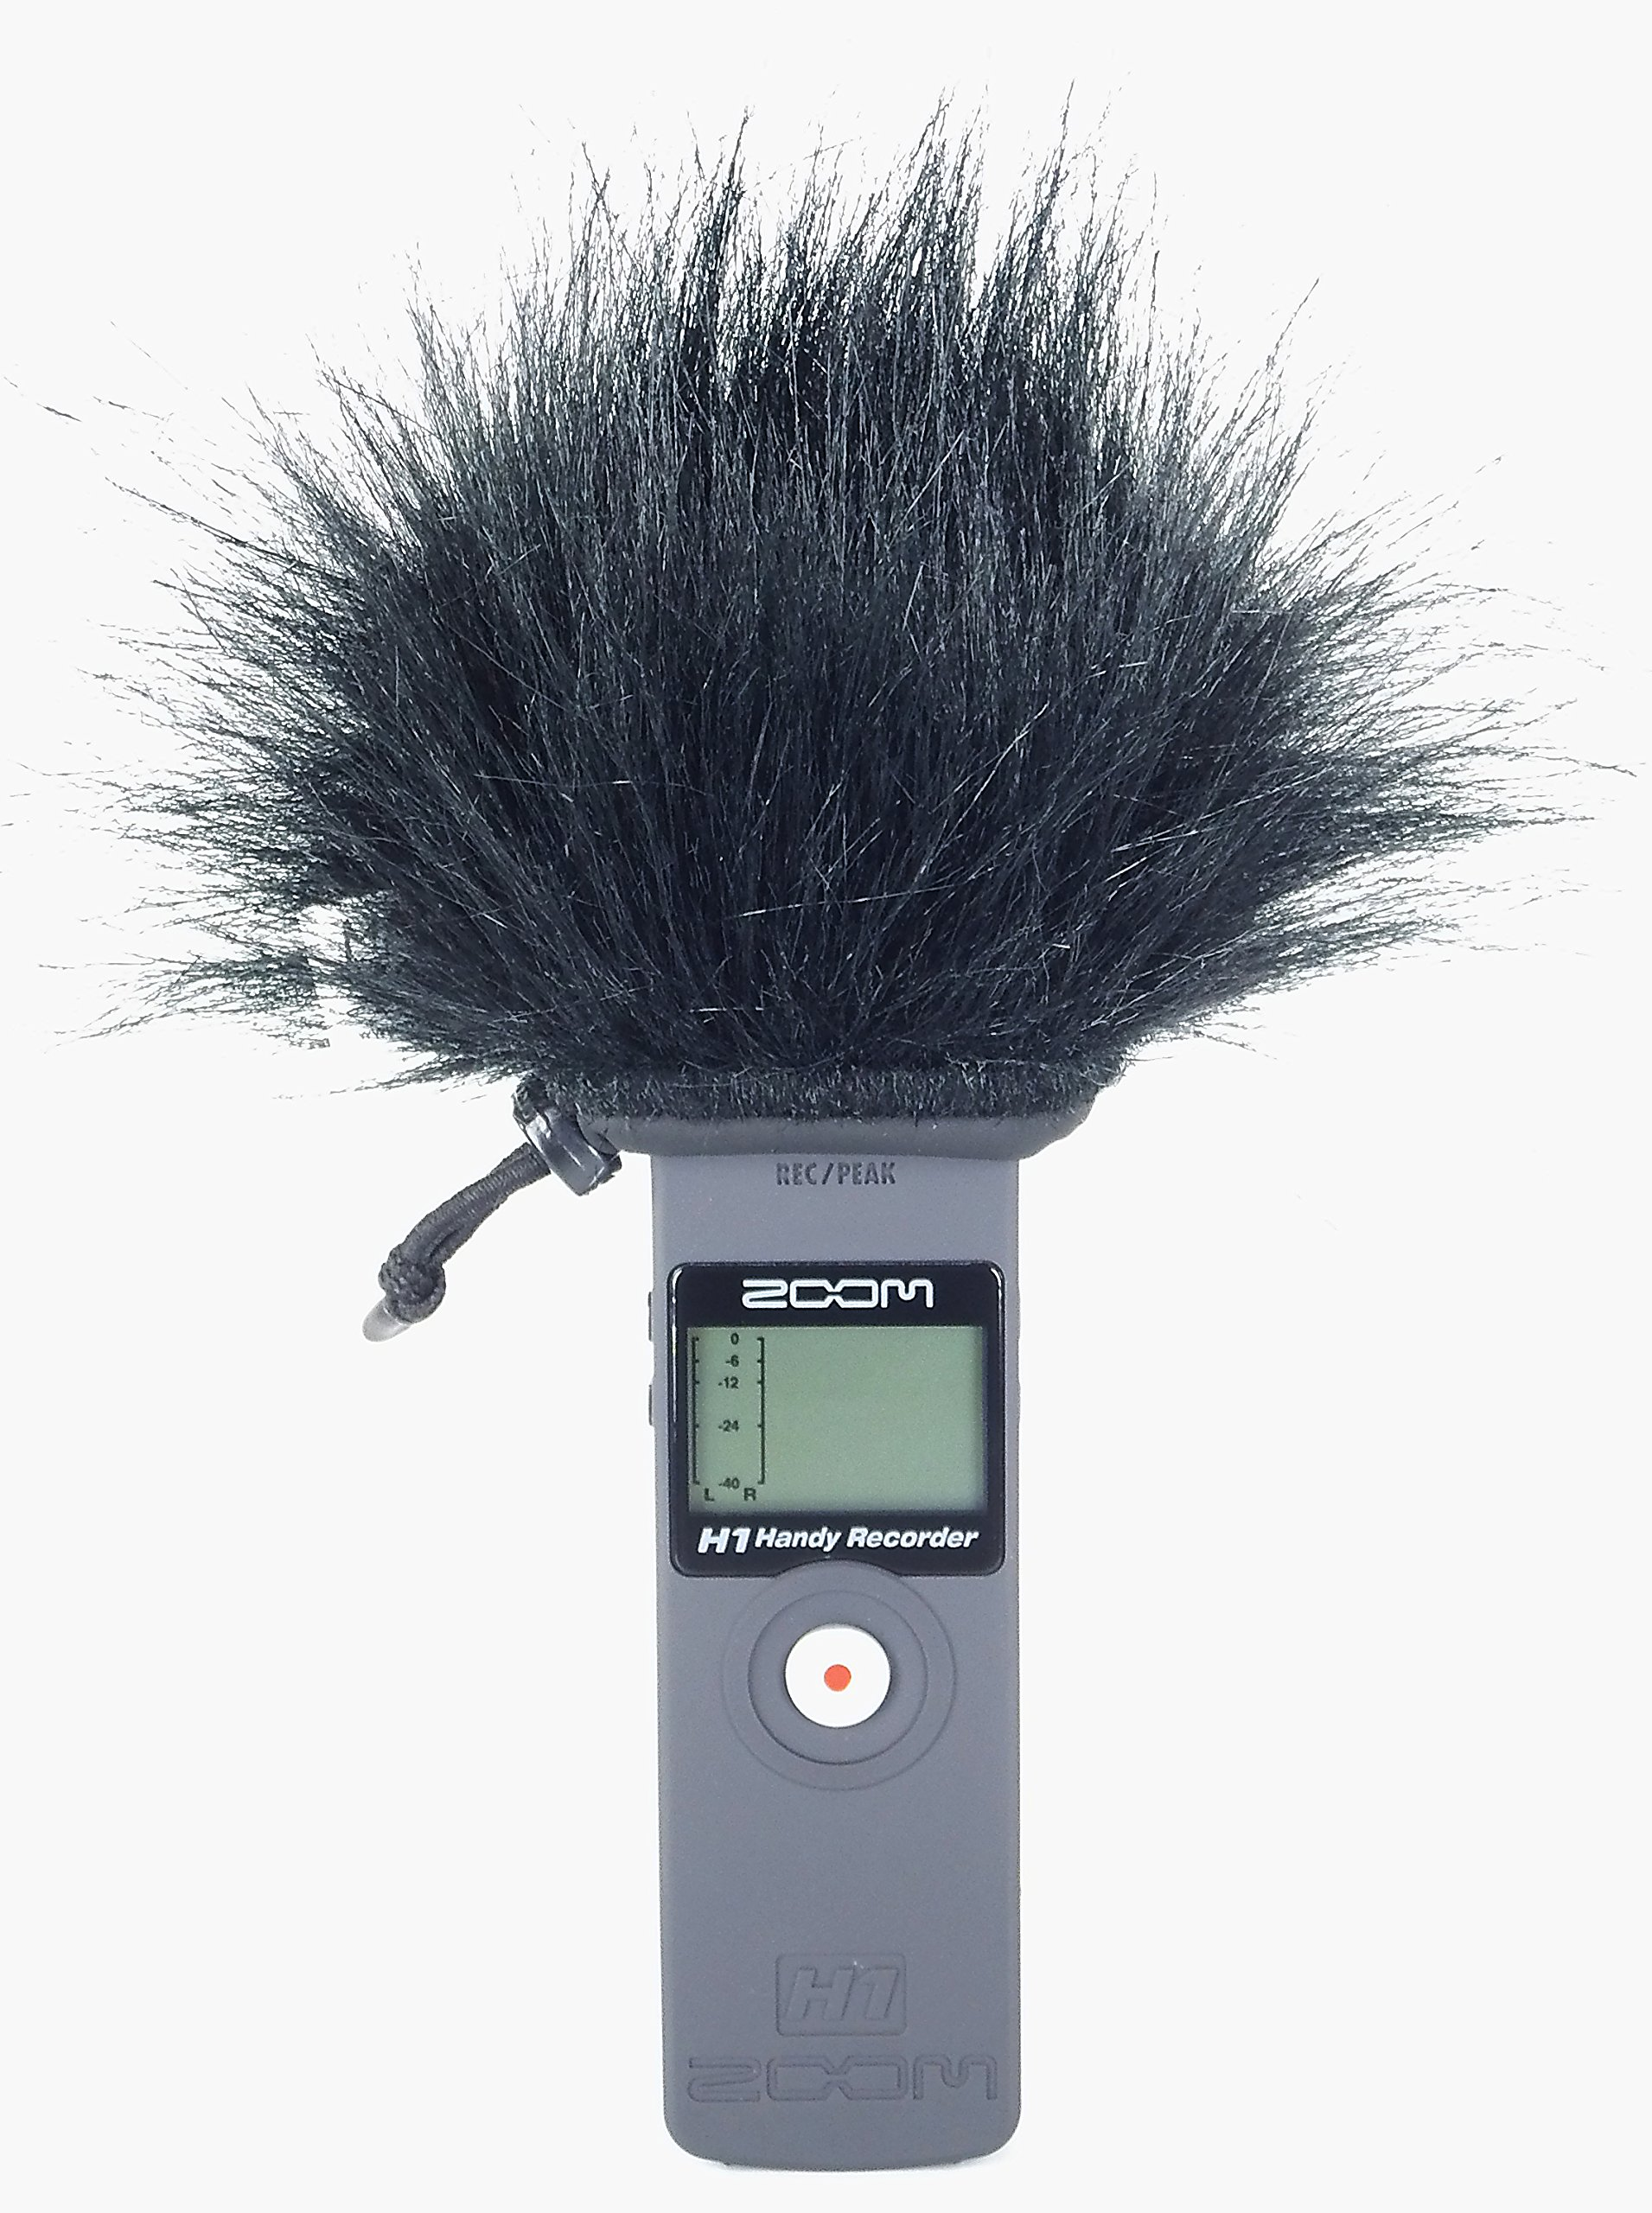 Master Sound Outdoor Windscreen Muff for recorder ZOOM H1 to protect the record from the wind, easy to put on hand recorders, made in the EU from certified, and reliable materials by Master Sound